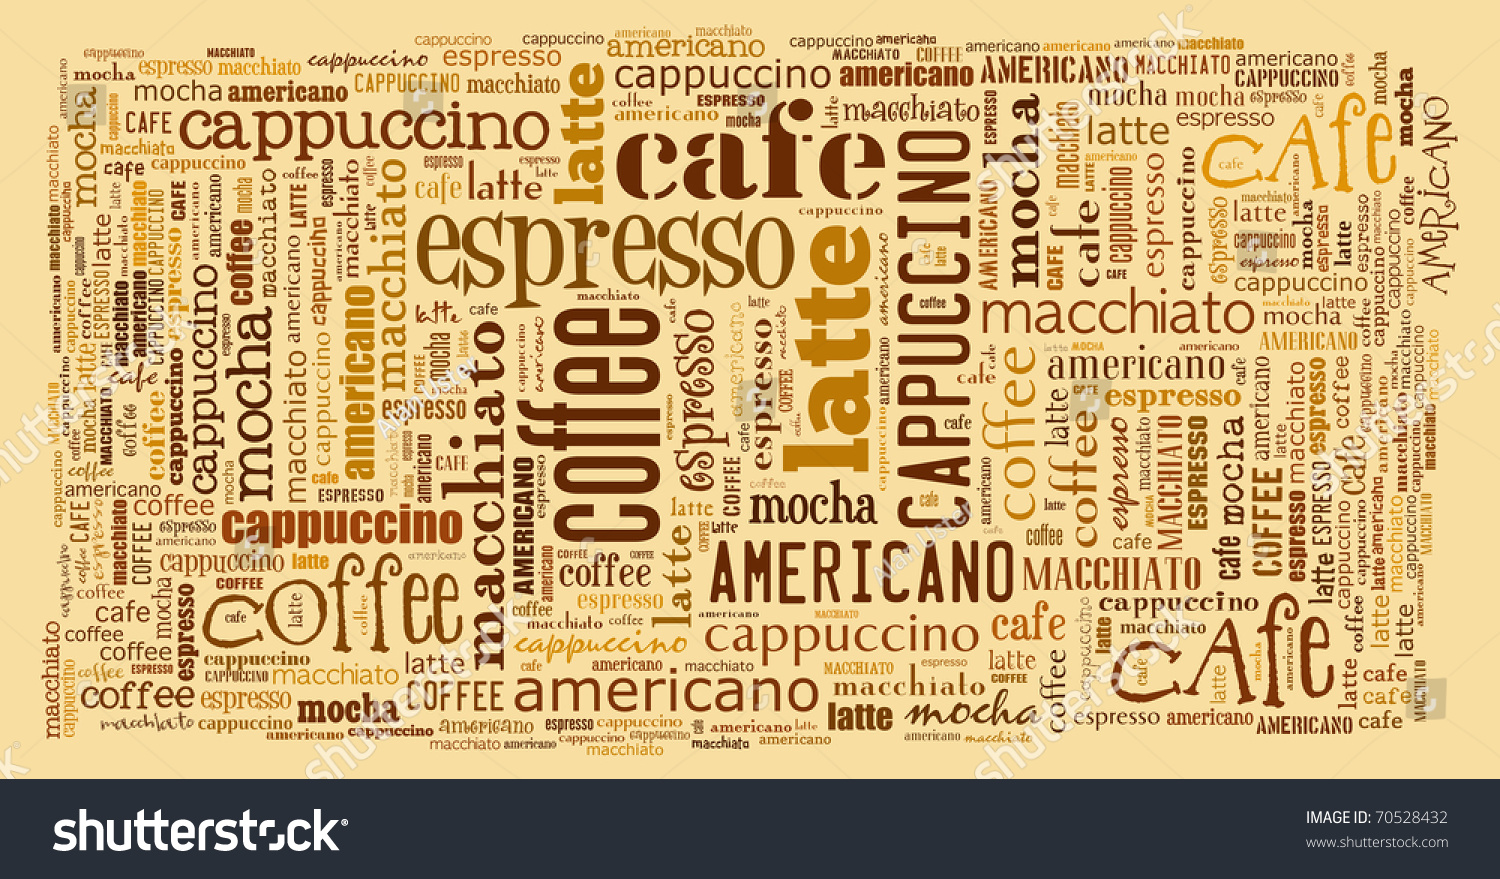 Wallpaper Decorate Cafe Coffee Shop Stock Illustration 70528432 ...